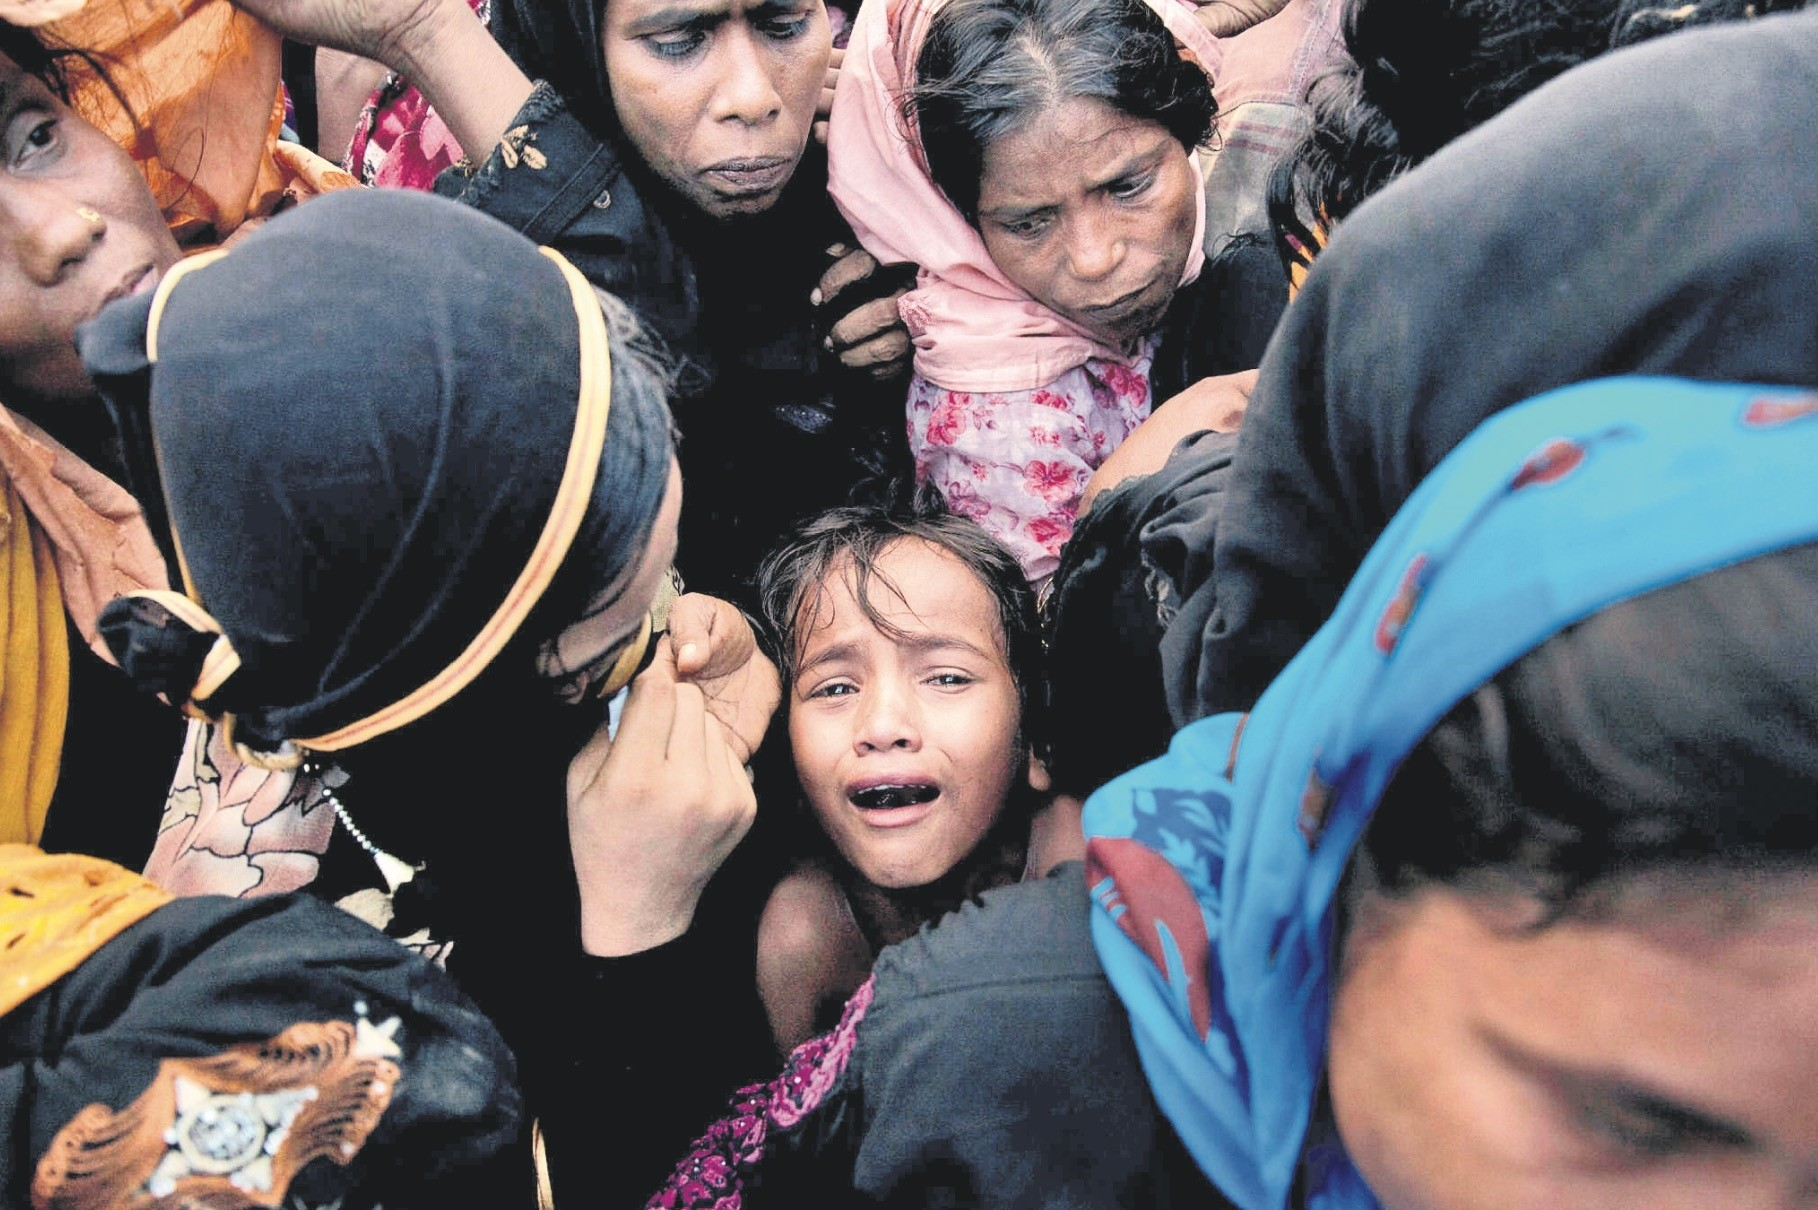 A Rohingya refugee child cries as she stands amid a crowd to receive food being distributed near Balukhali refugee camp, Cox's Bazar, Bangladesh, Sept. 20, 2017.